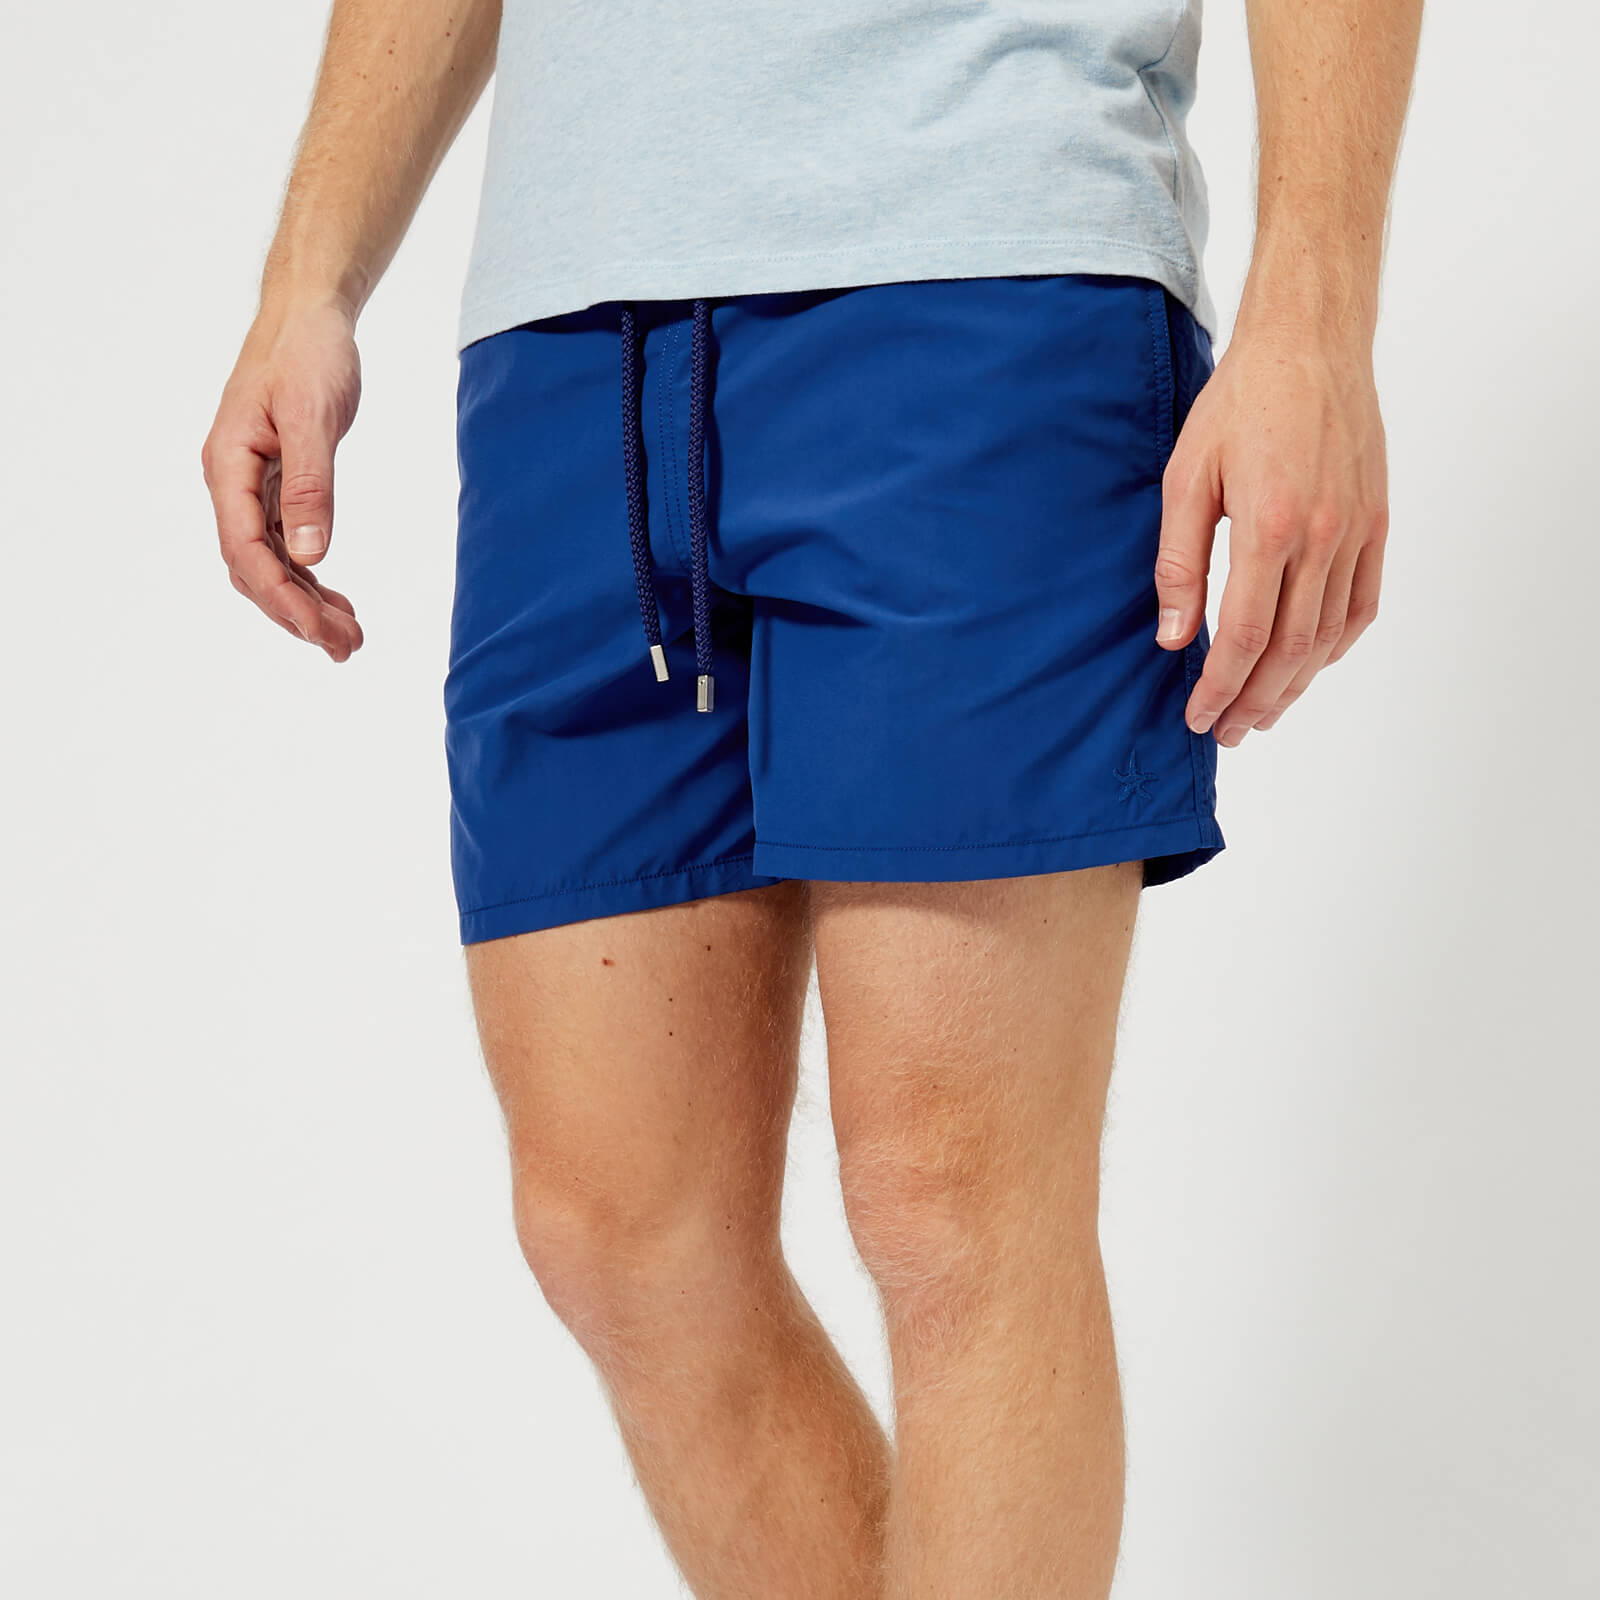 27f186700f Vilebrequin Men's Moorea Starfish Art Aquareactif Swim Shorts - Bleu  Neptune - Free UK Delivery over £50